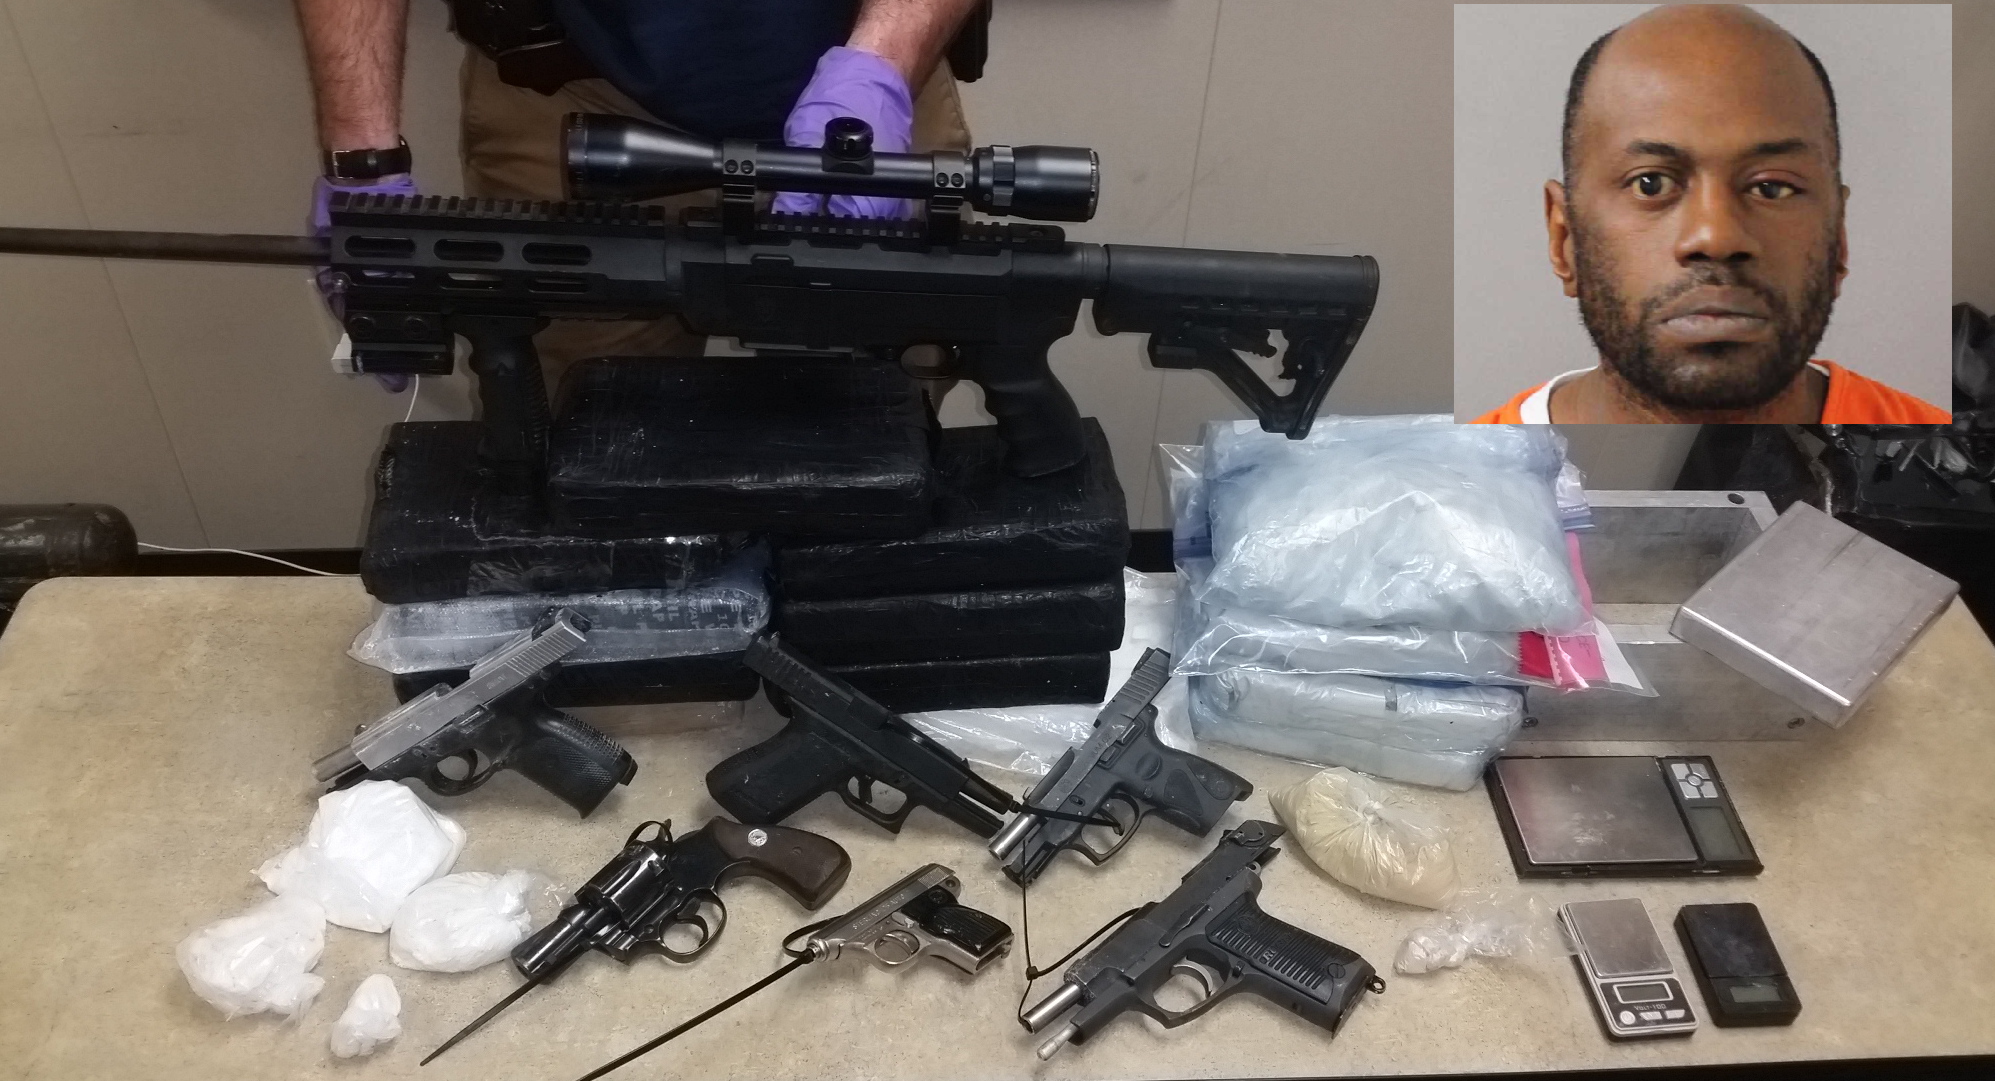 Weapons and drugs seized in Walter Jones arrest. PHOTOS: Metro Nashville Police<p></p>